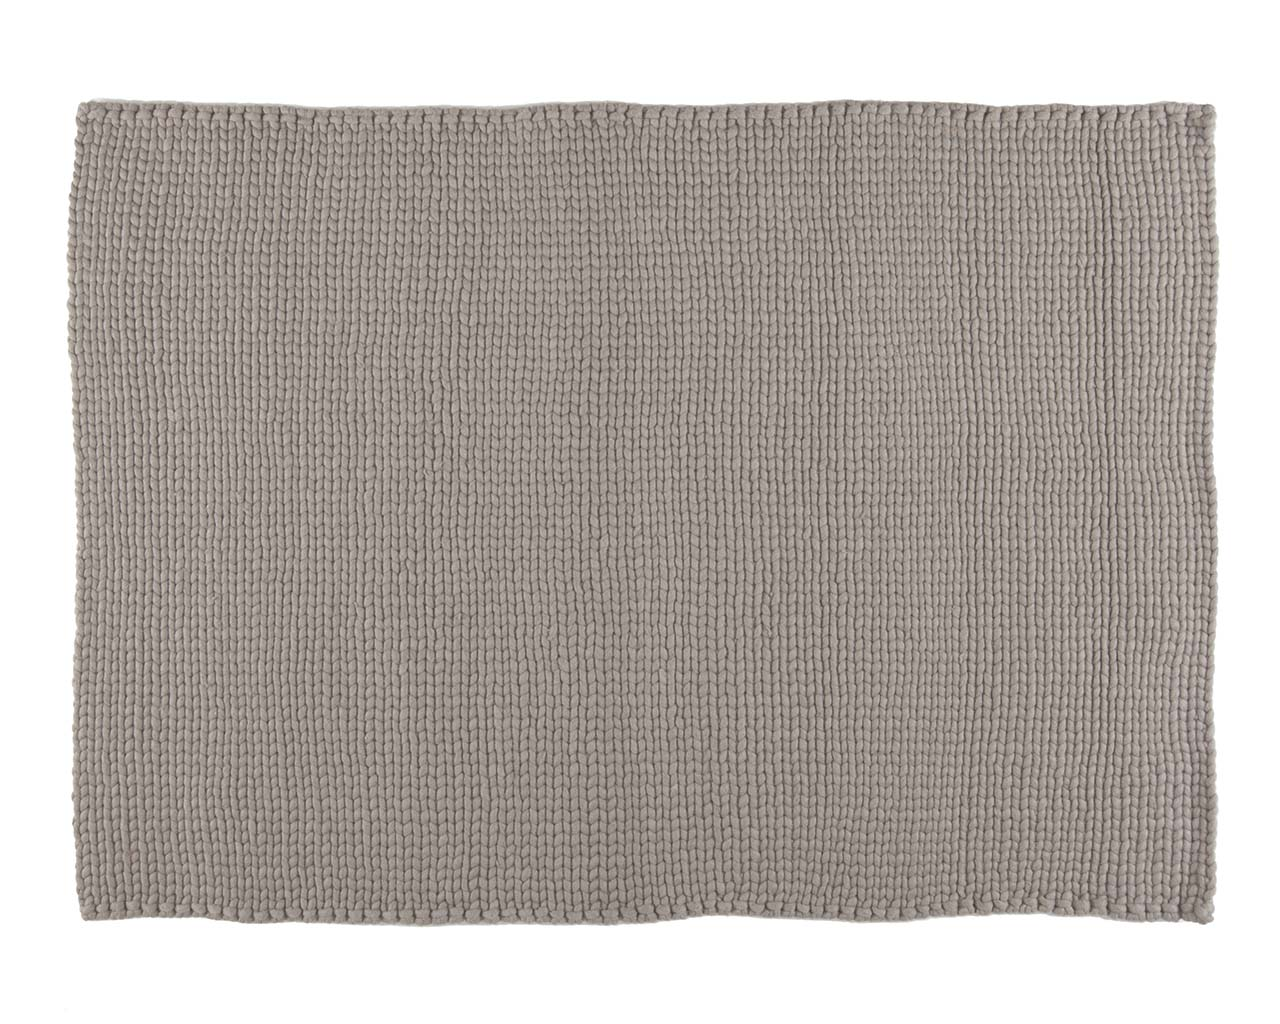 knitted gainsboro rectangle wool modern carpets for living room